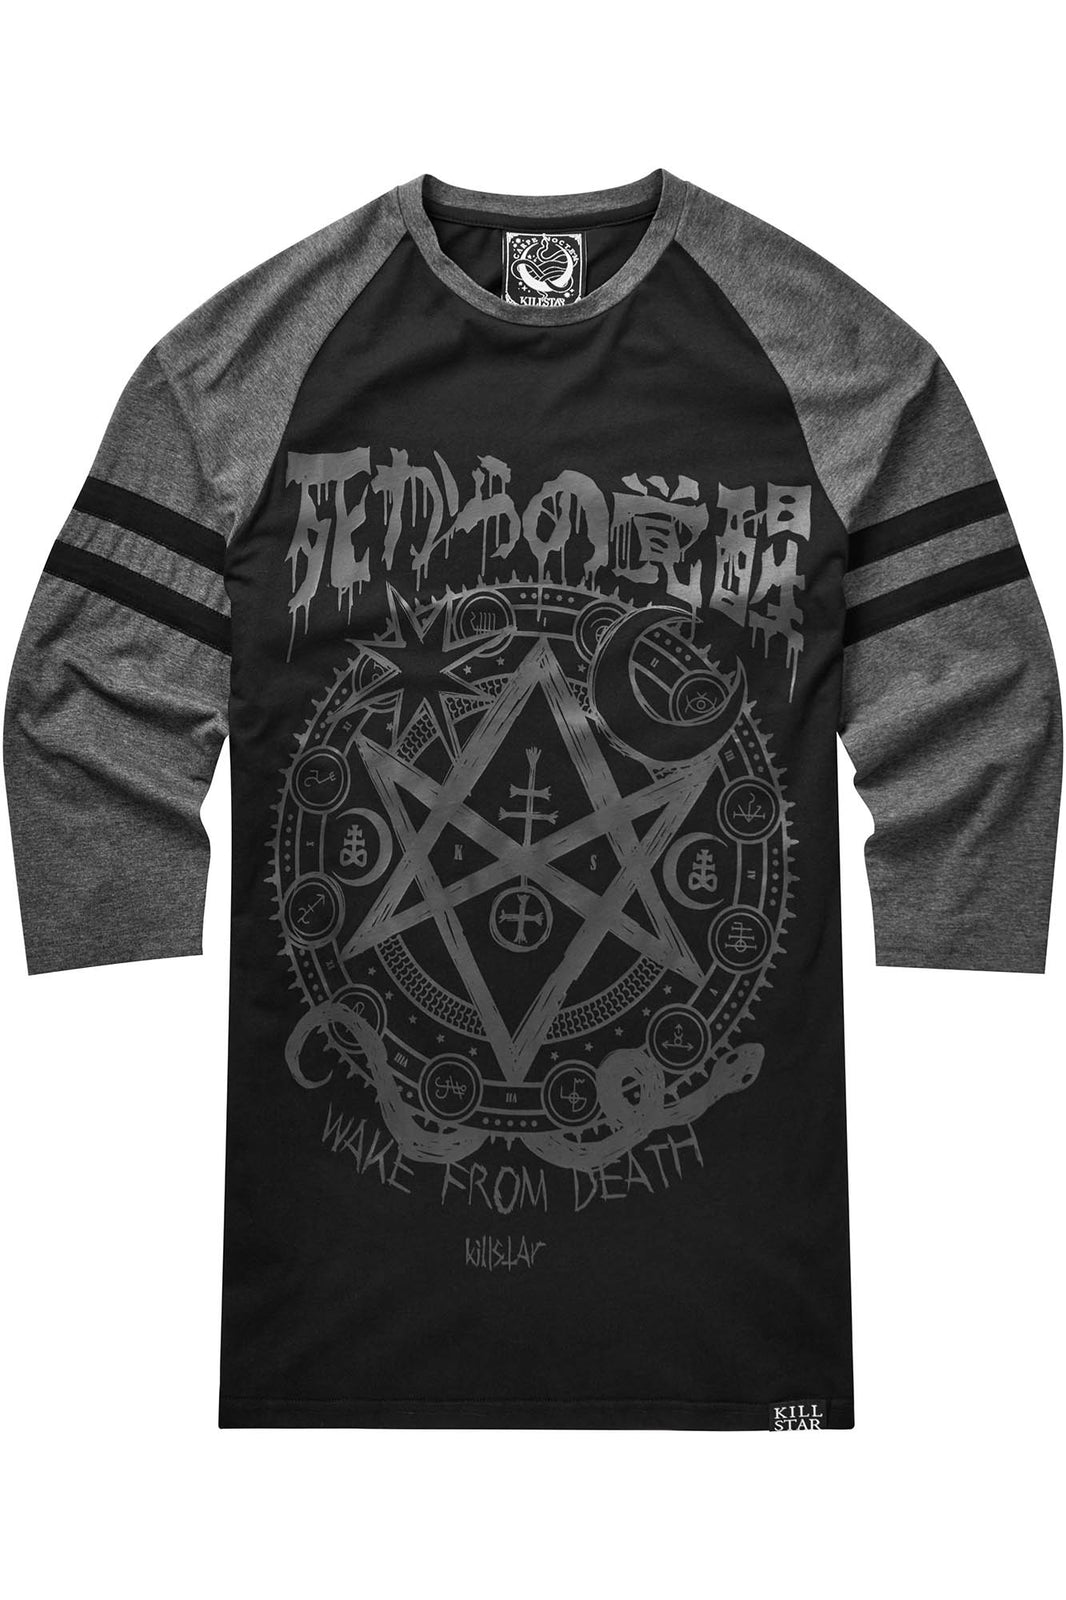 Wake From Death Raglan Top